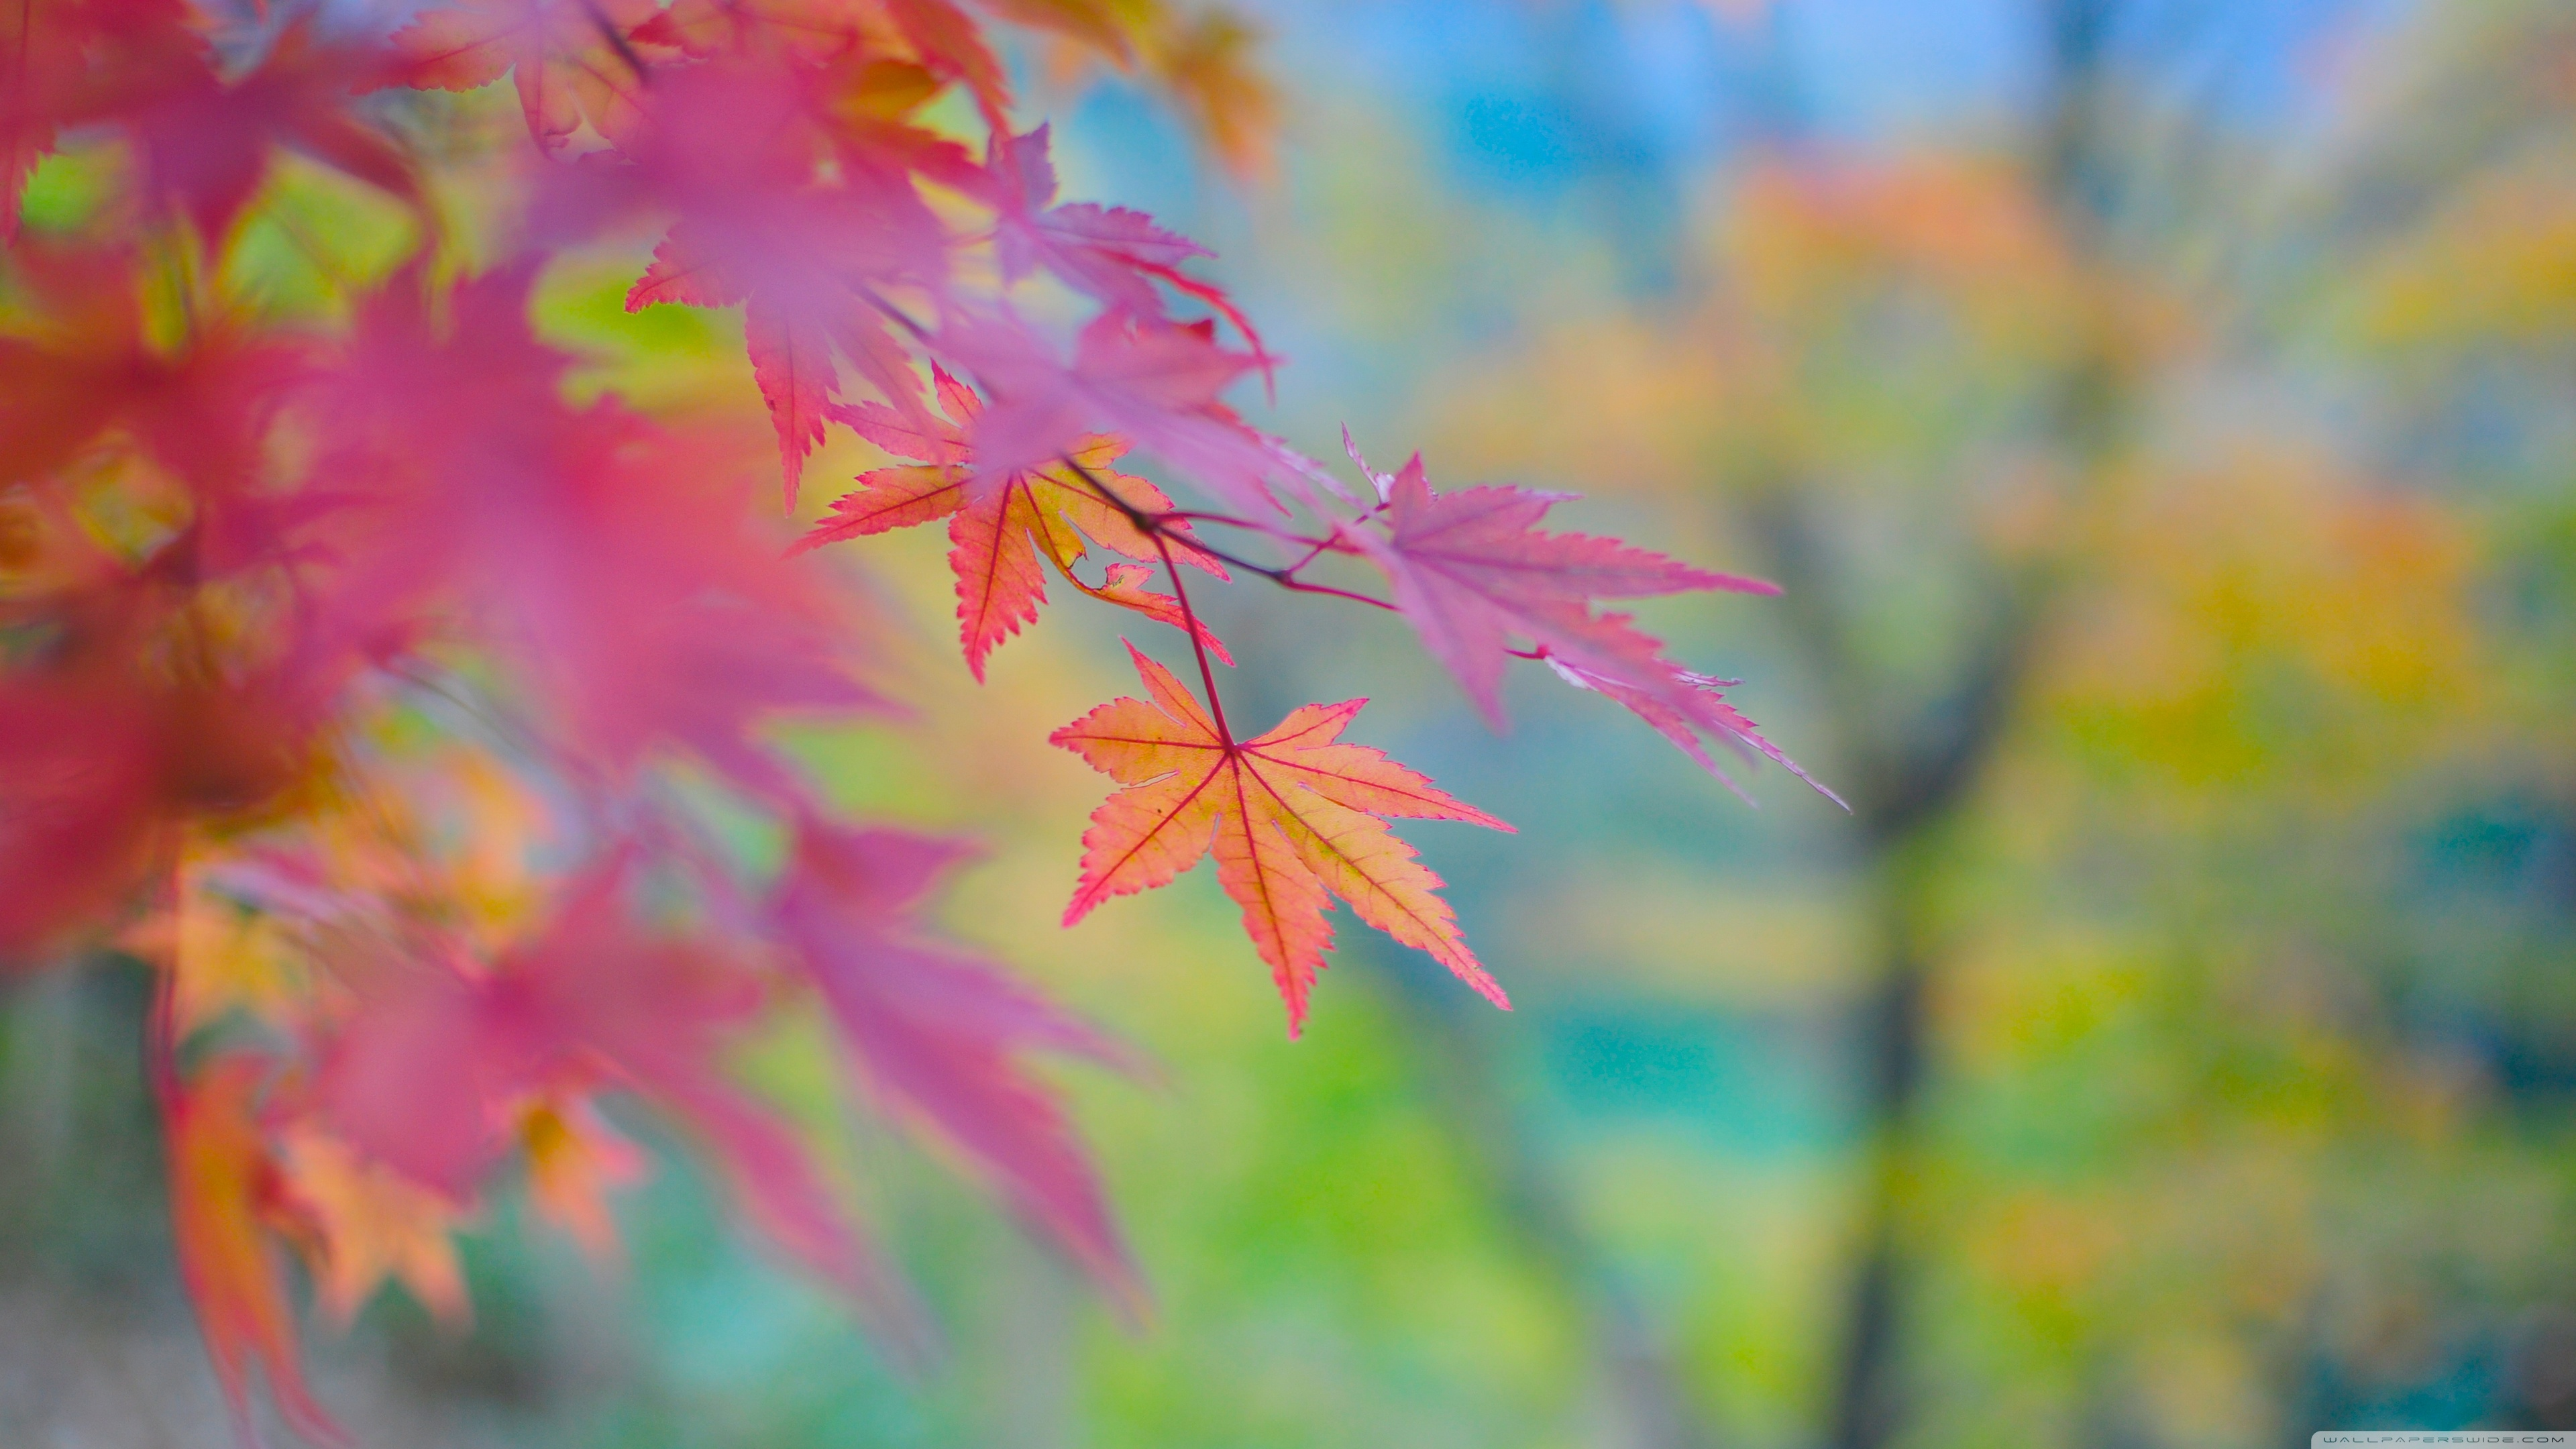 3d Colours Wallpaper Heart Autumn Colors In Japan 4k Hd Desktop Wallpaper For 4k